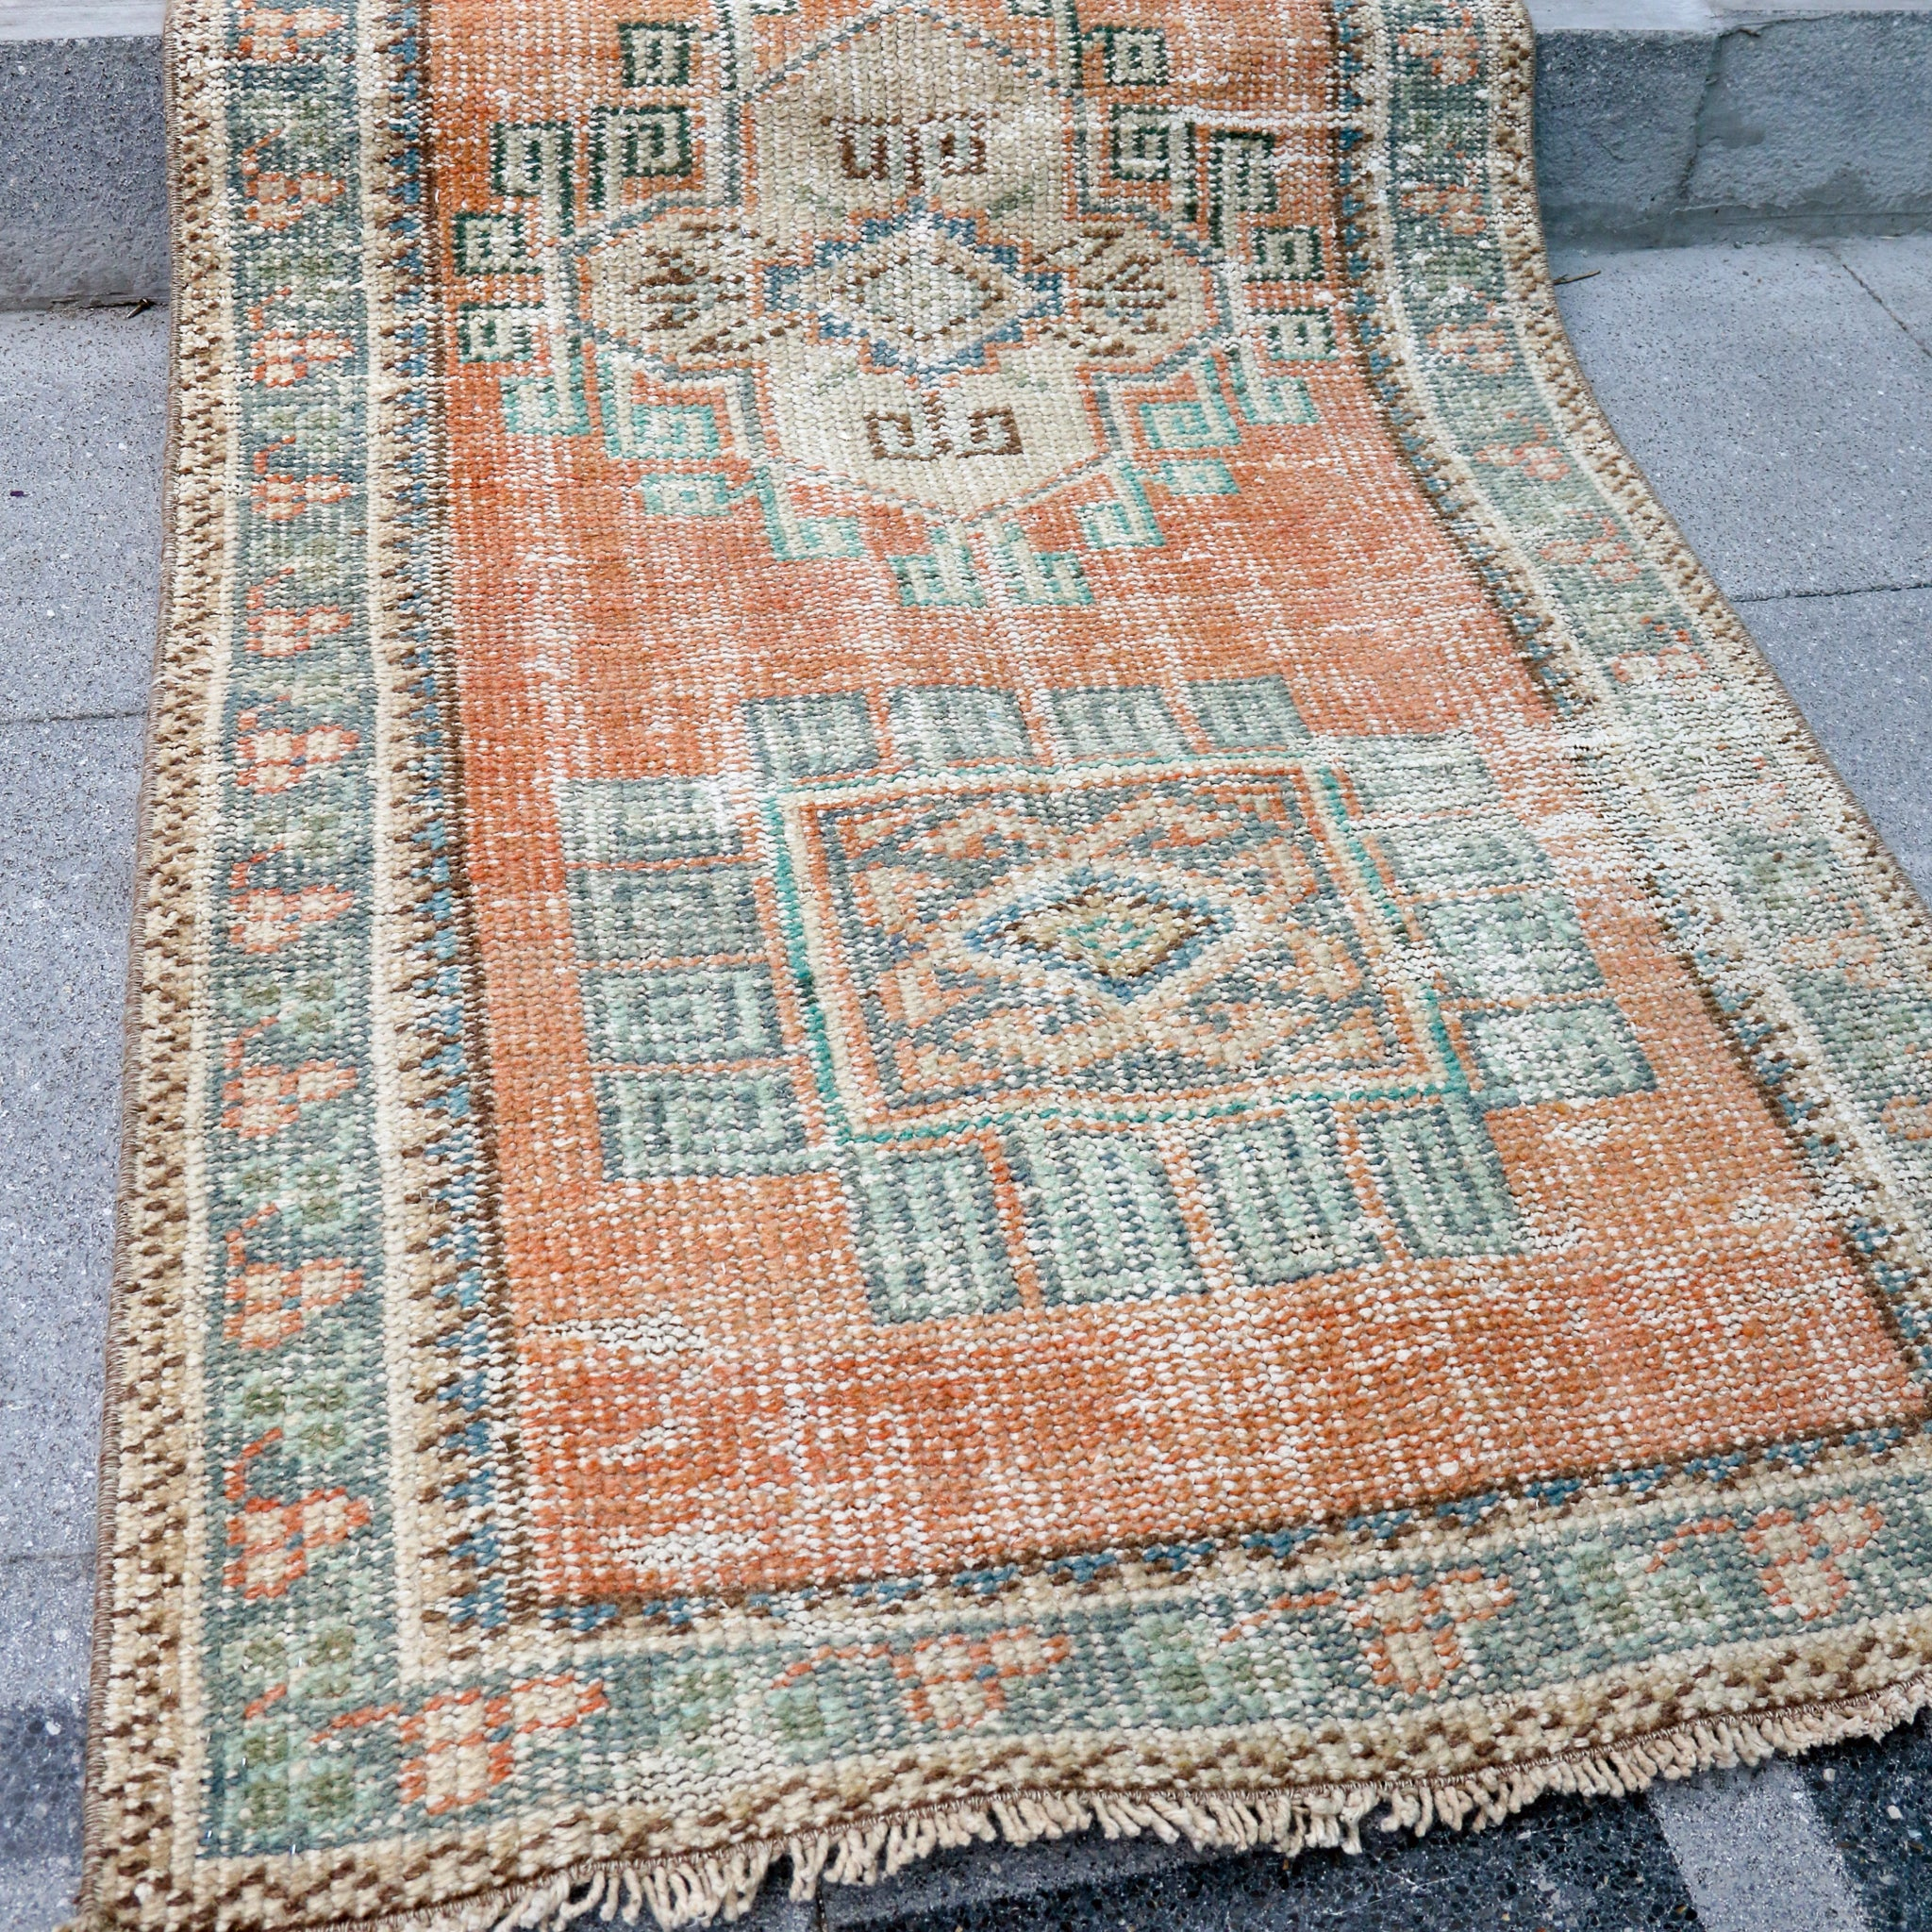 ON HOLD 1152 Büsra 2'6x11 Handwoven Vintage Rug